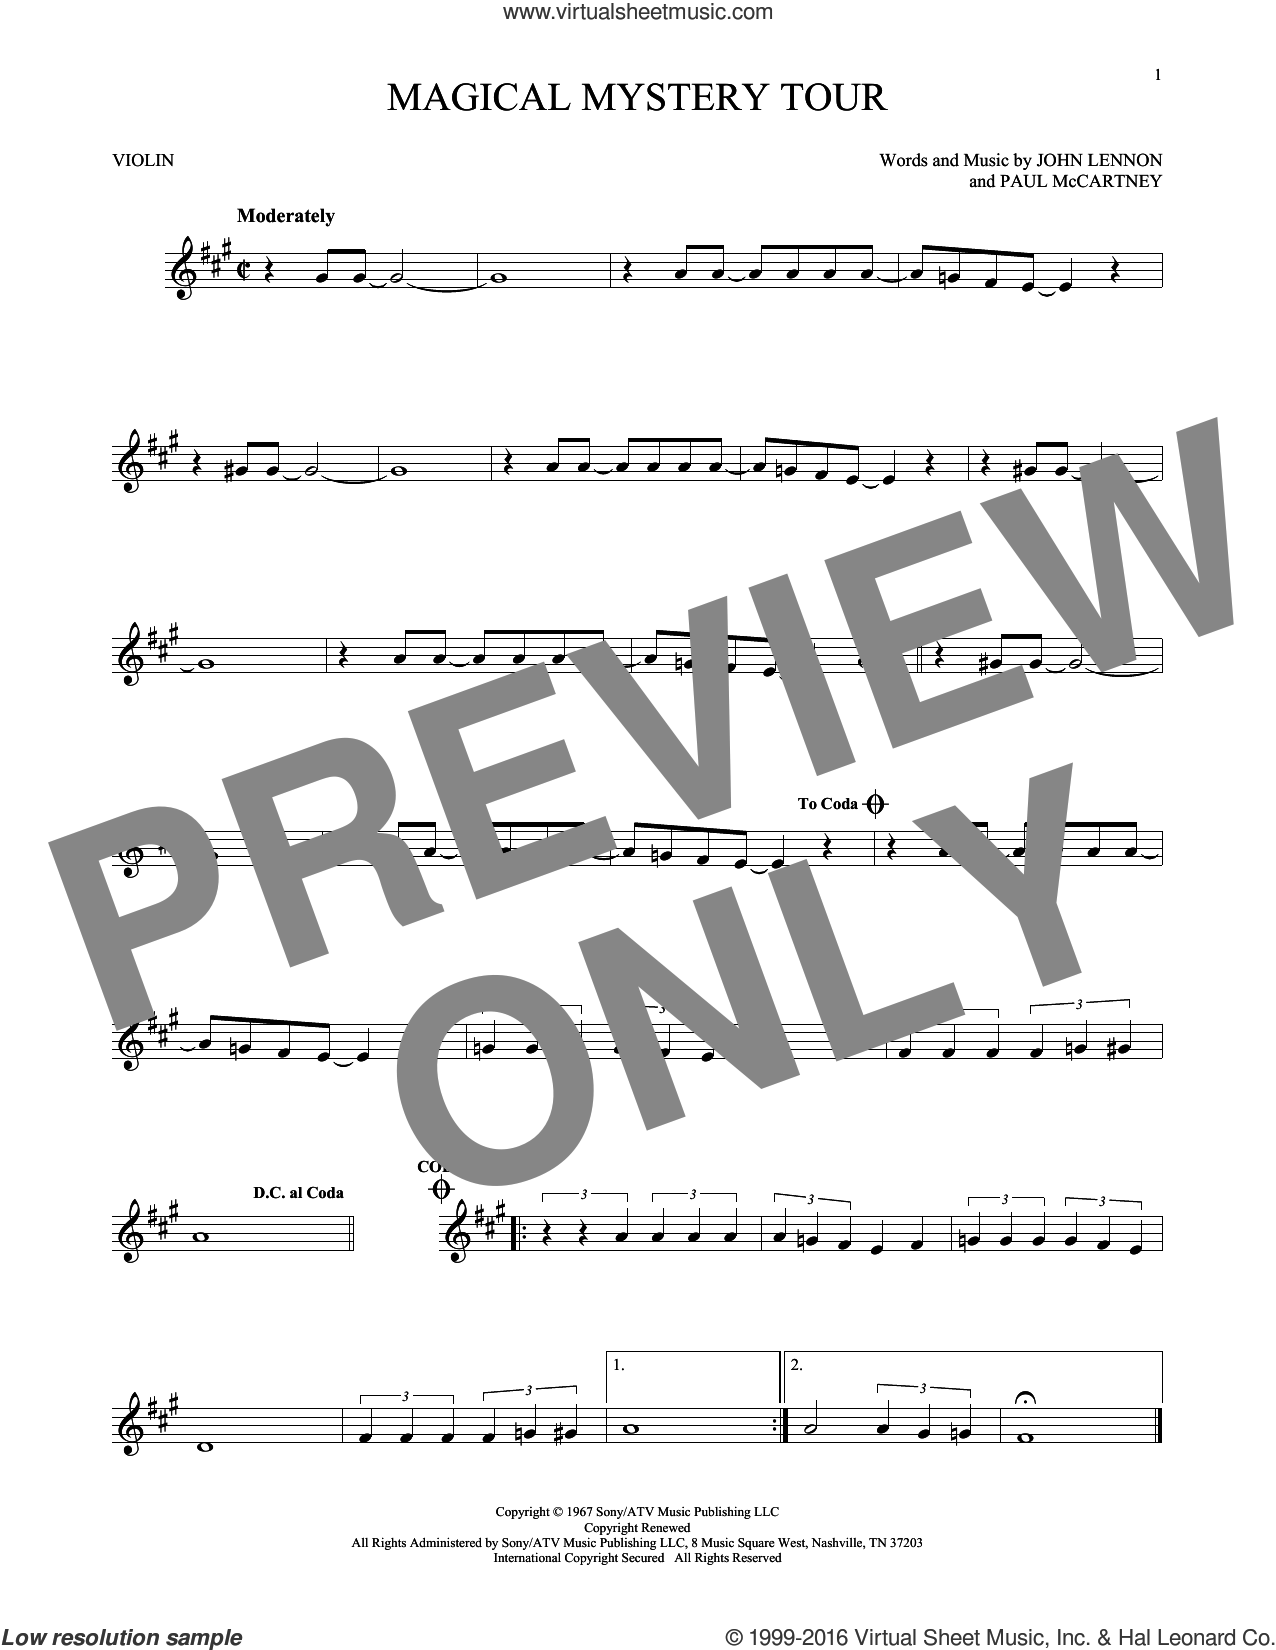 Magical Mystery Tour sheet music for violin solo by The Beatles, John Lennon and Paul McCartney, intermediate skill level